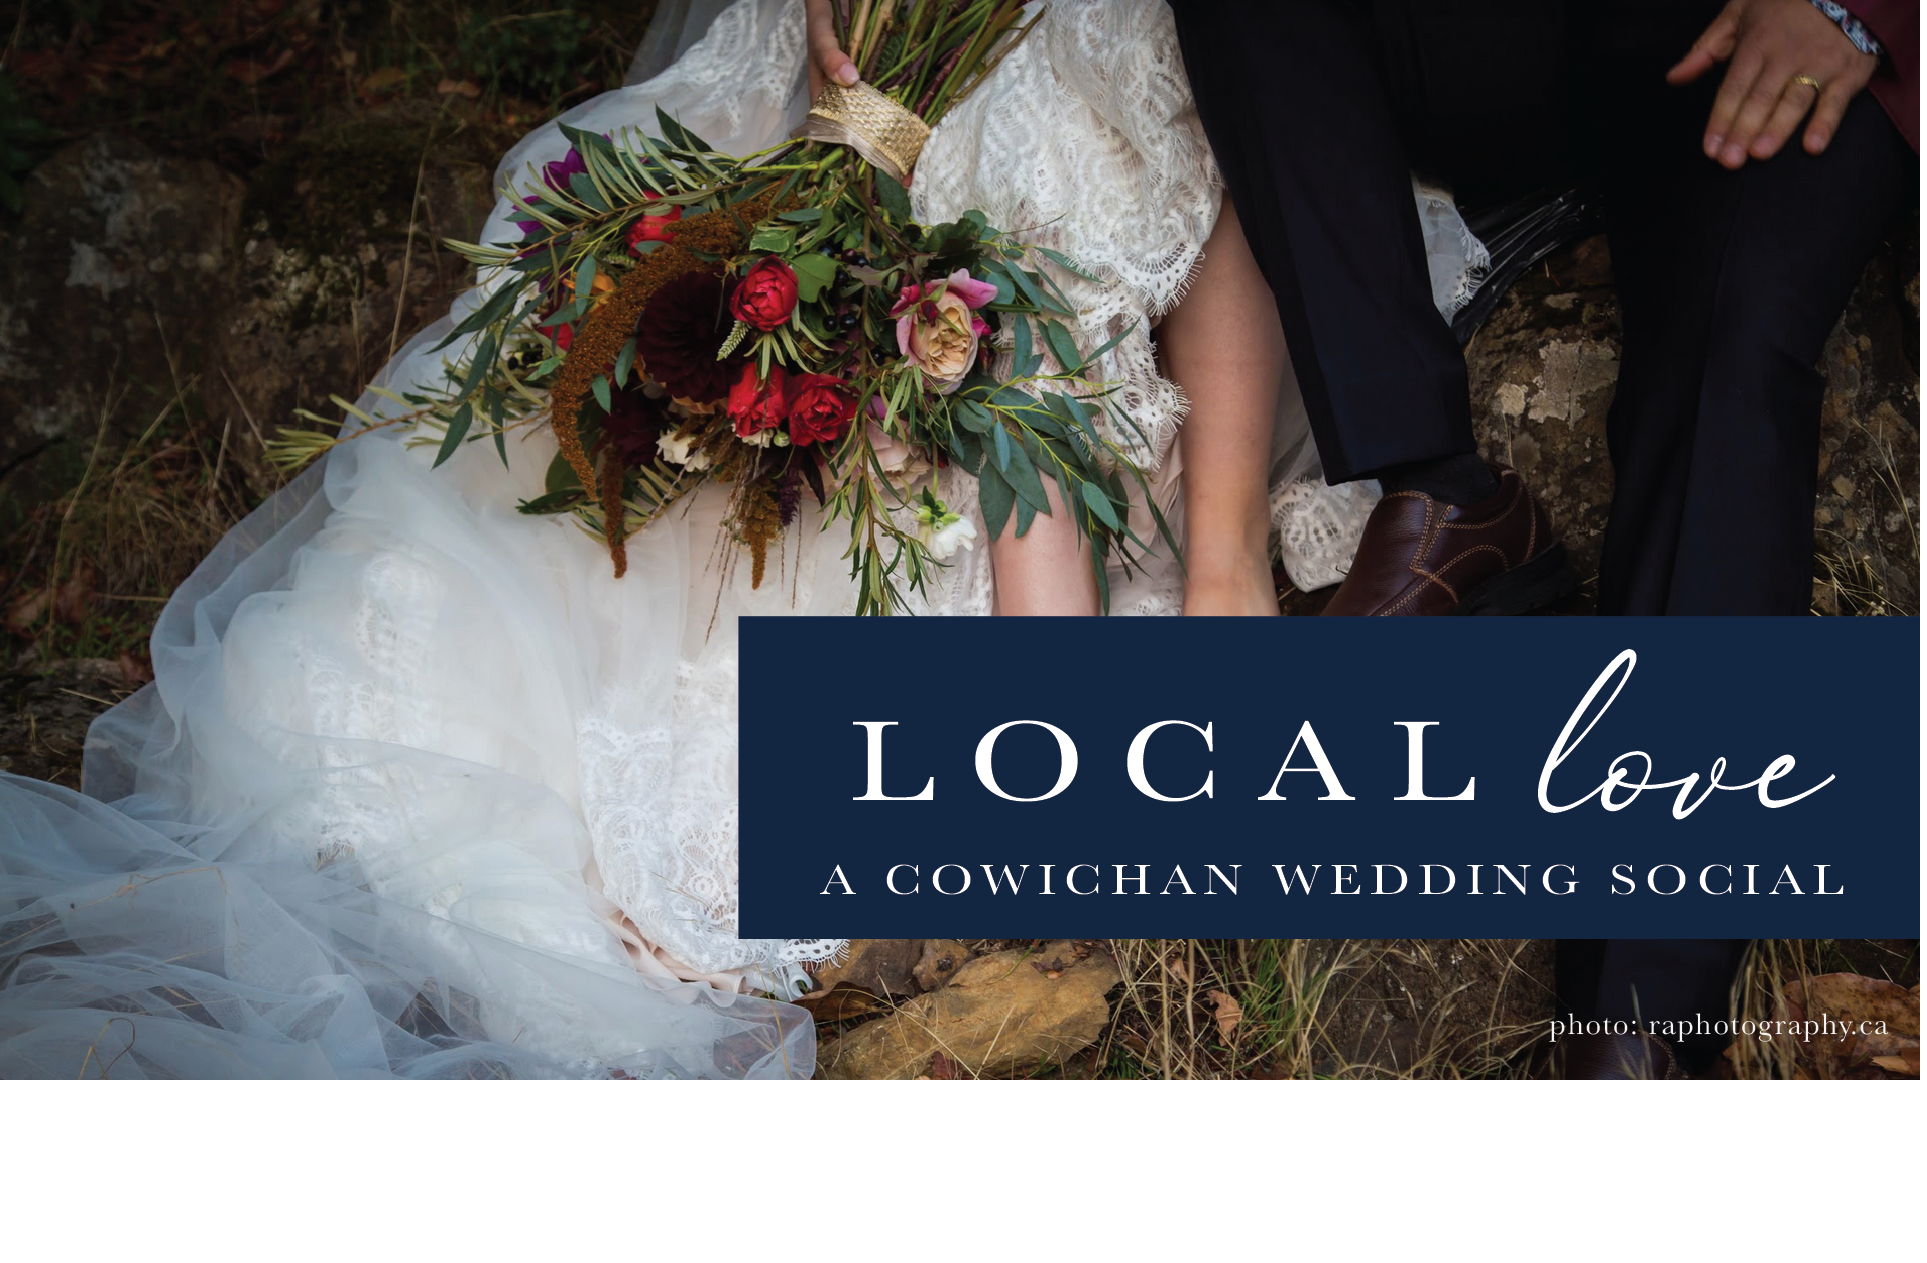 Local Love A Cowichan Wedding Social on Eventbrite